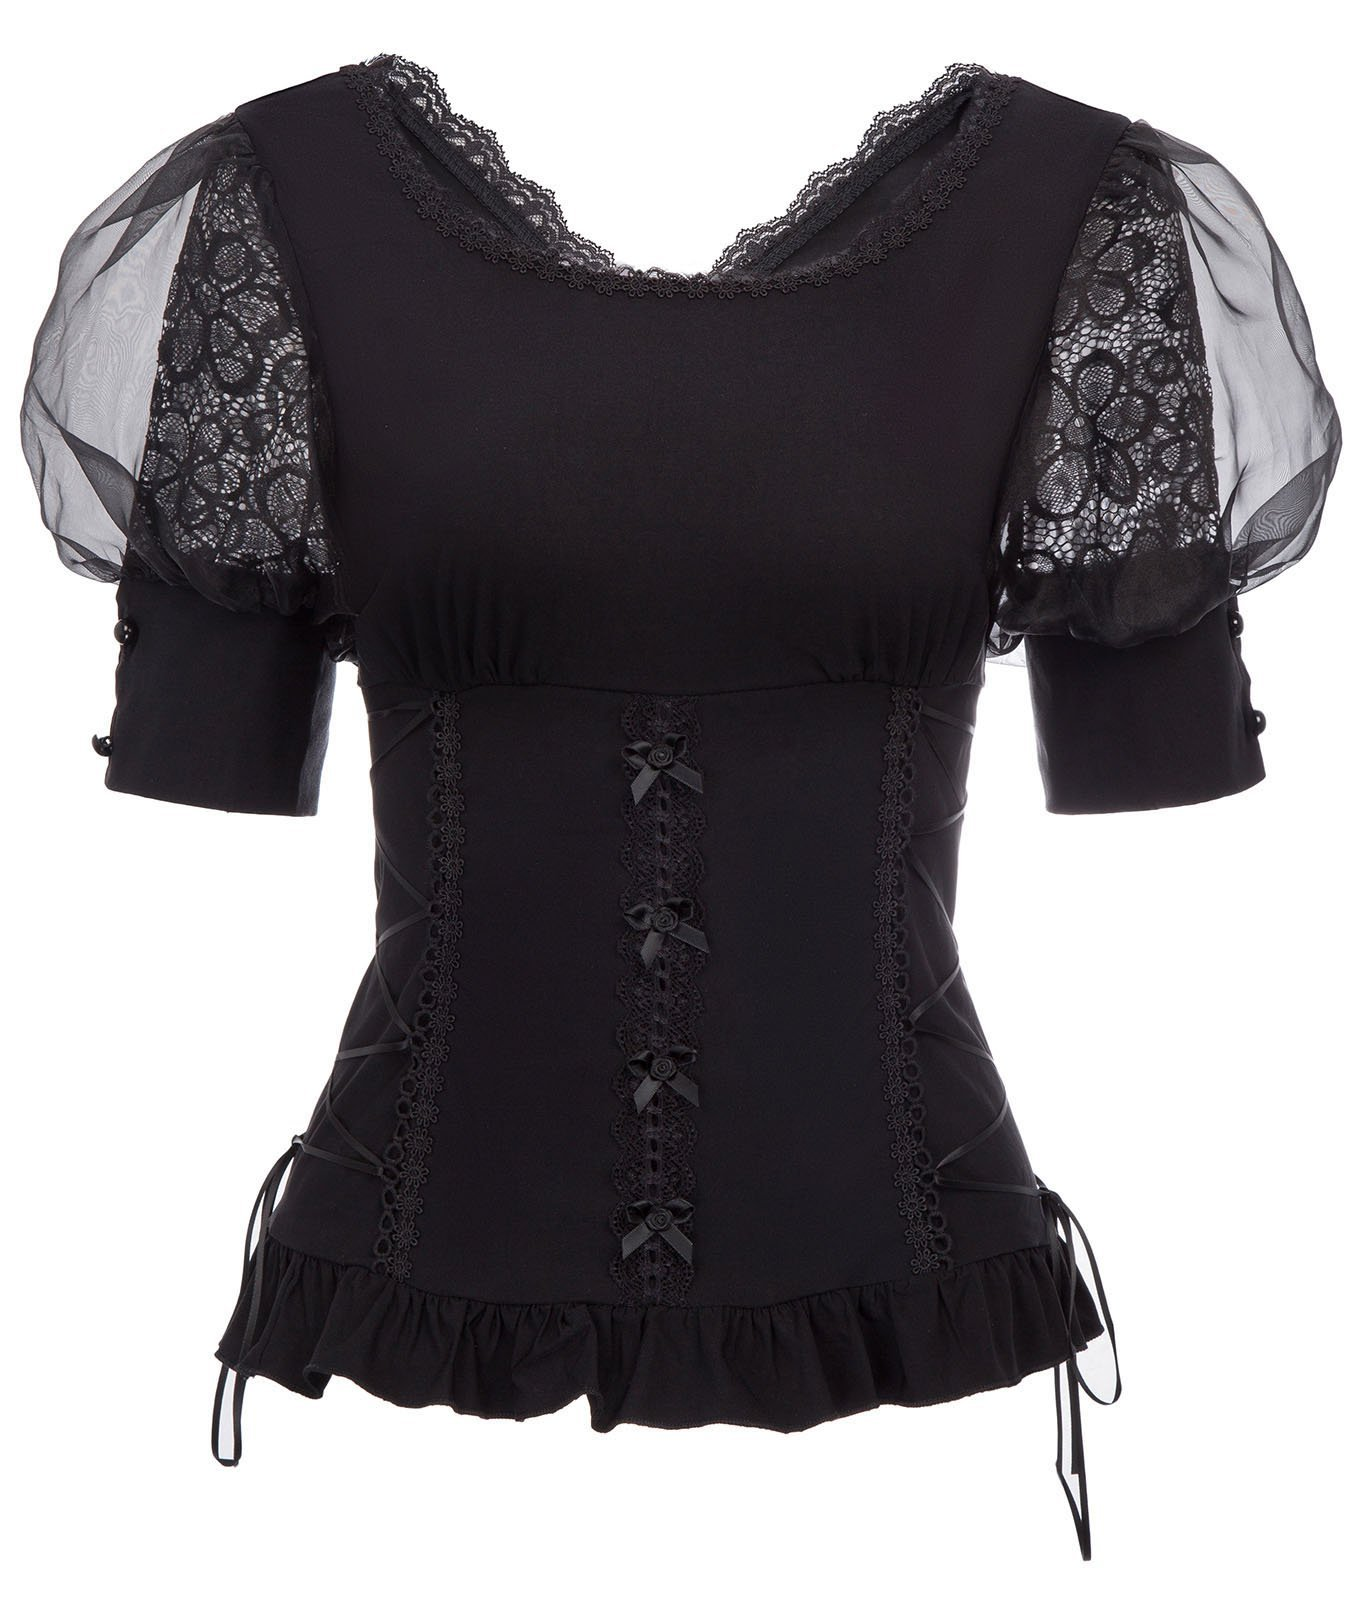 Belle Poque Women Victorian Puff Sleeve Shirt Steampunk Gothic Lace T Shirt Tops 3